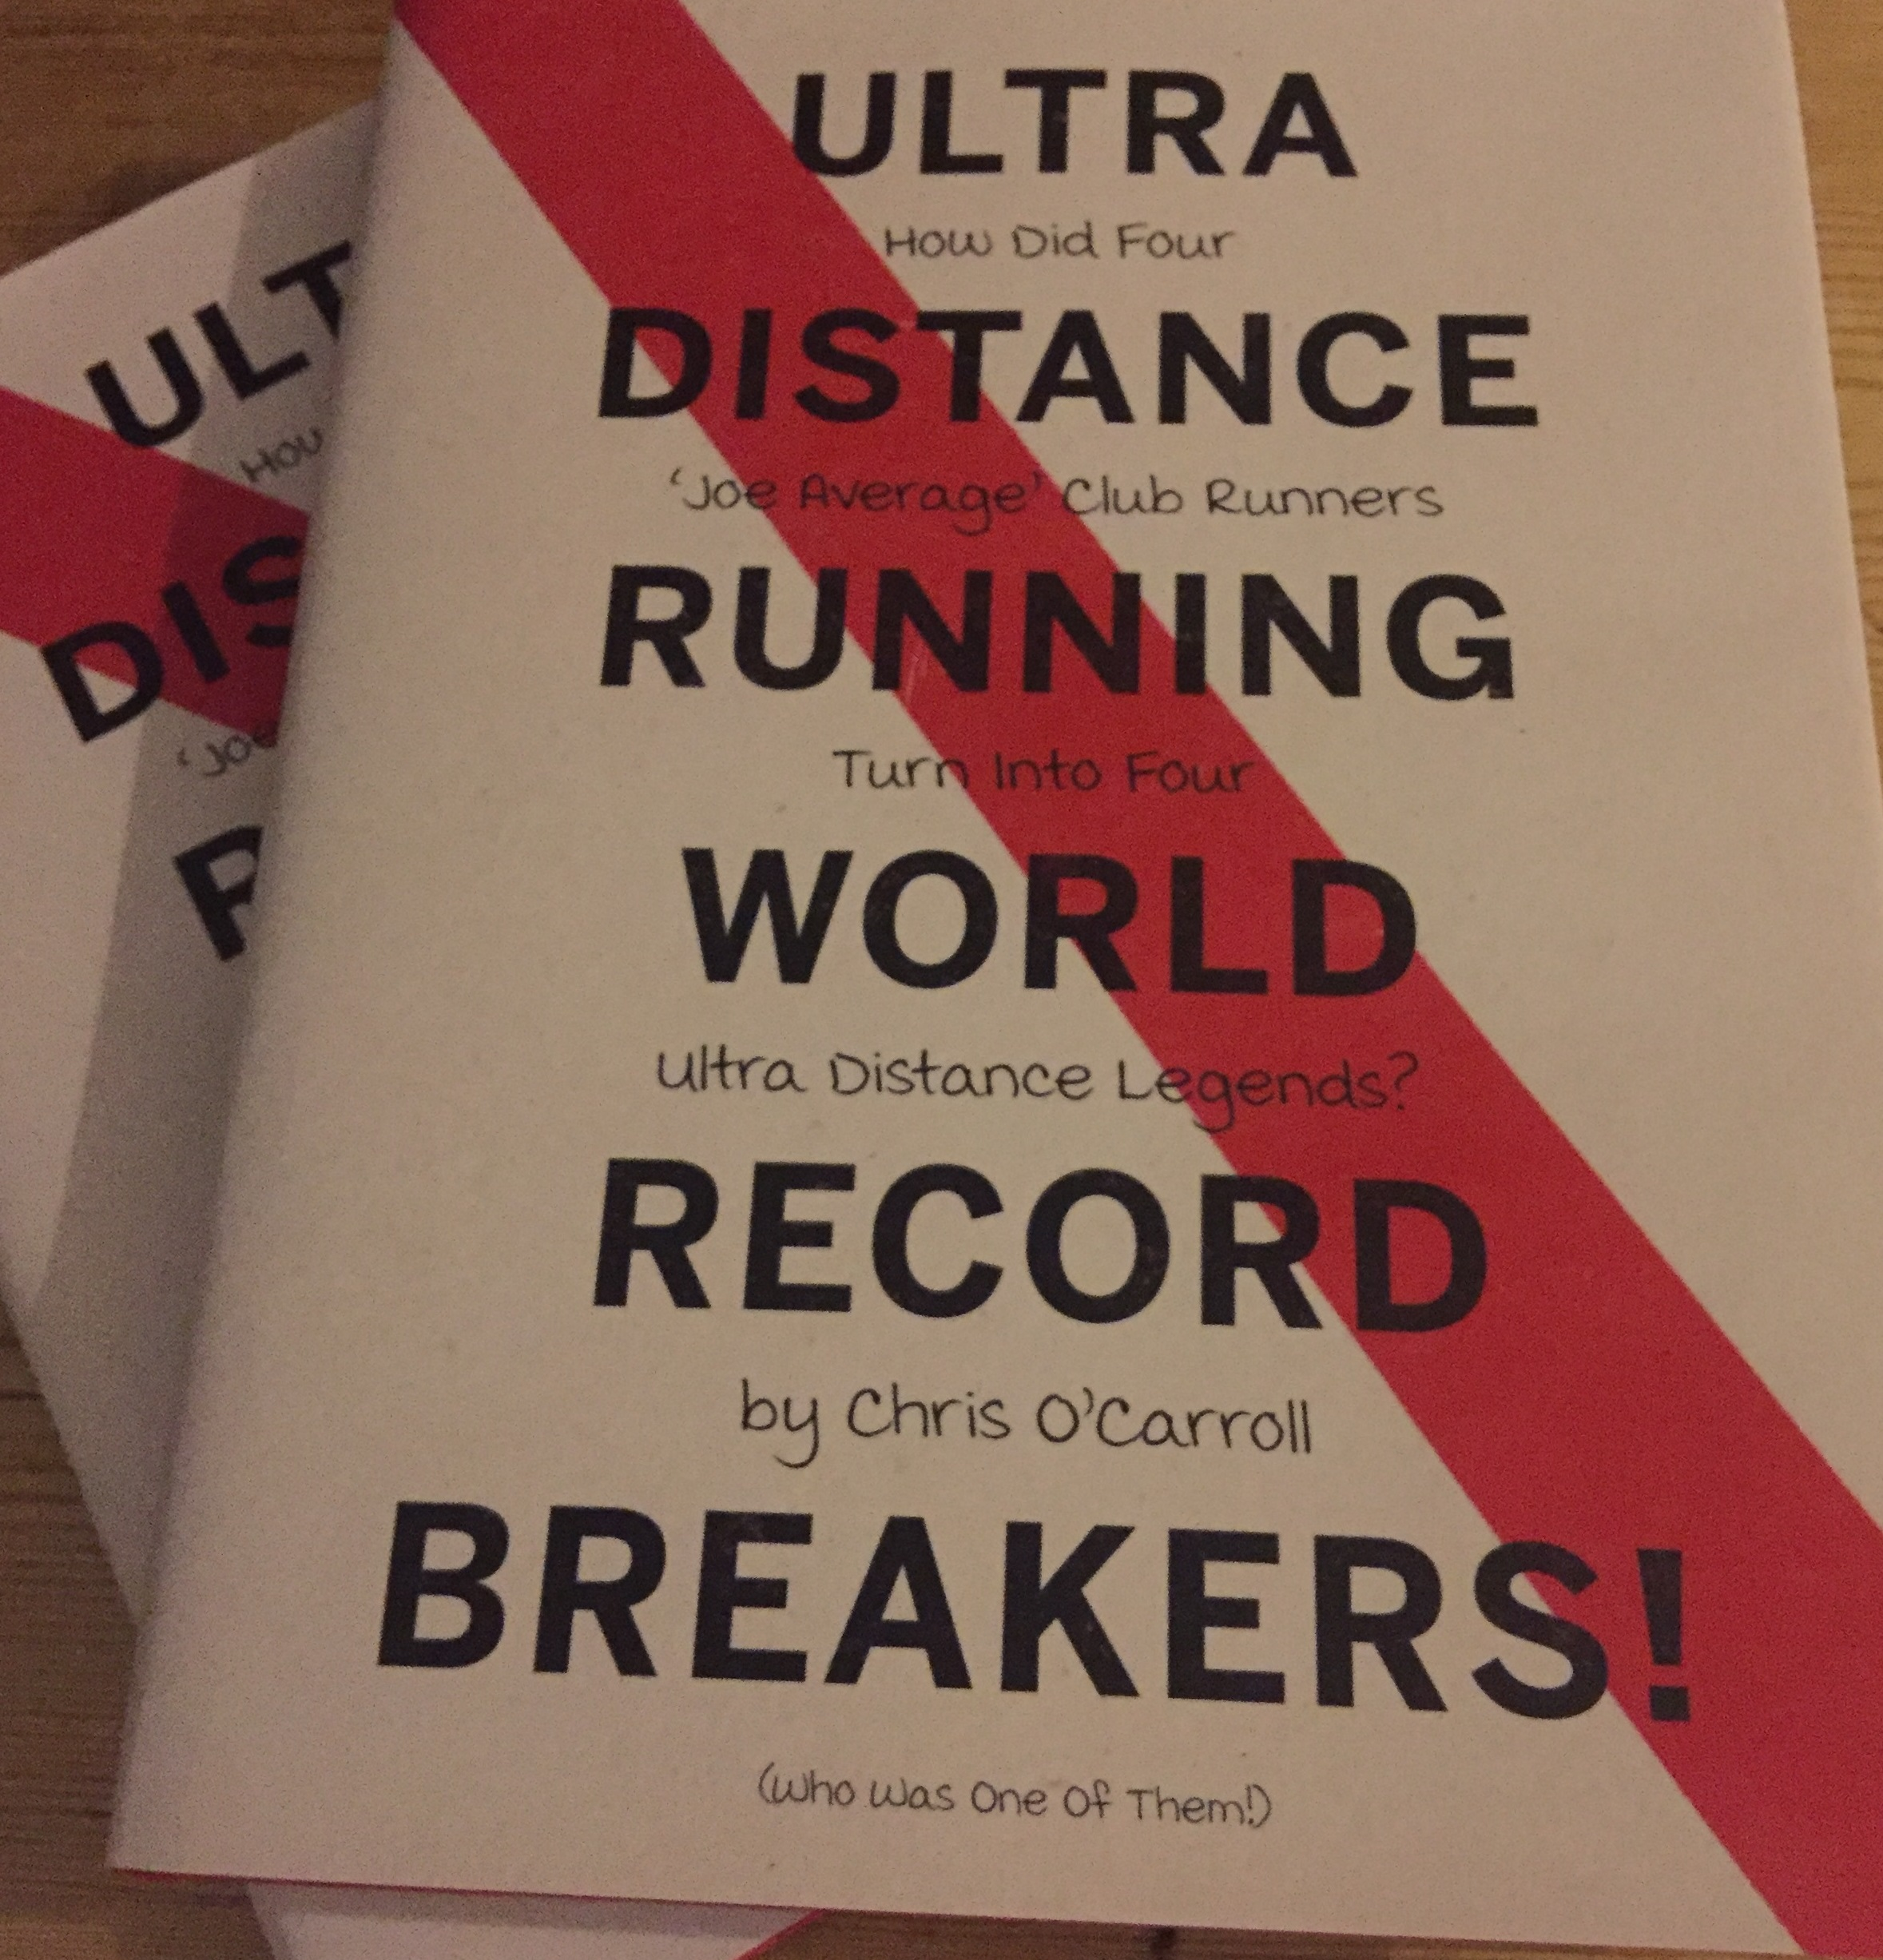 Ultra Distance Running World Record Breakers